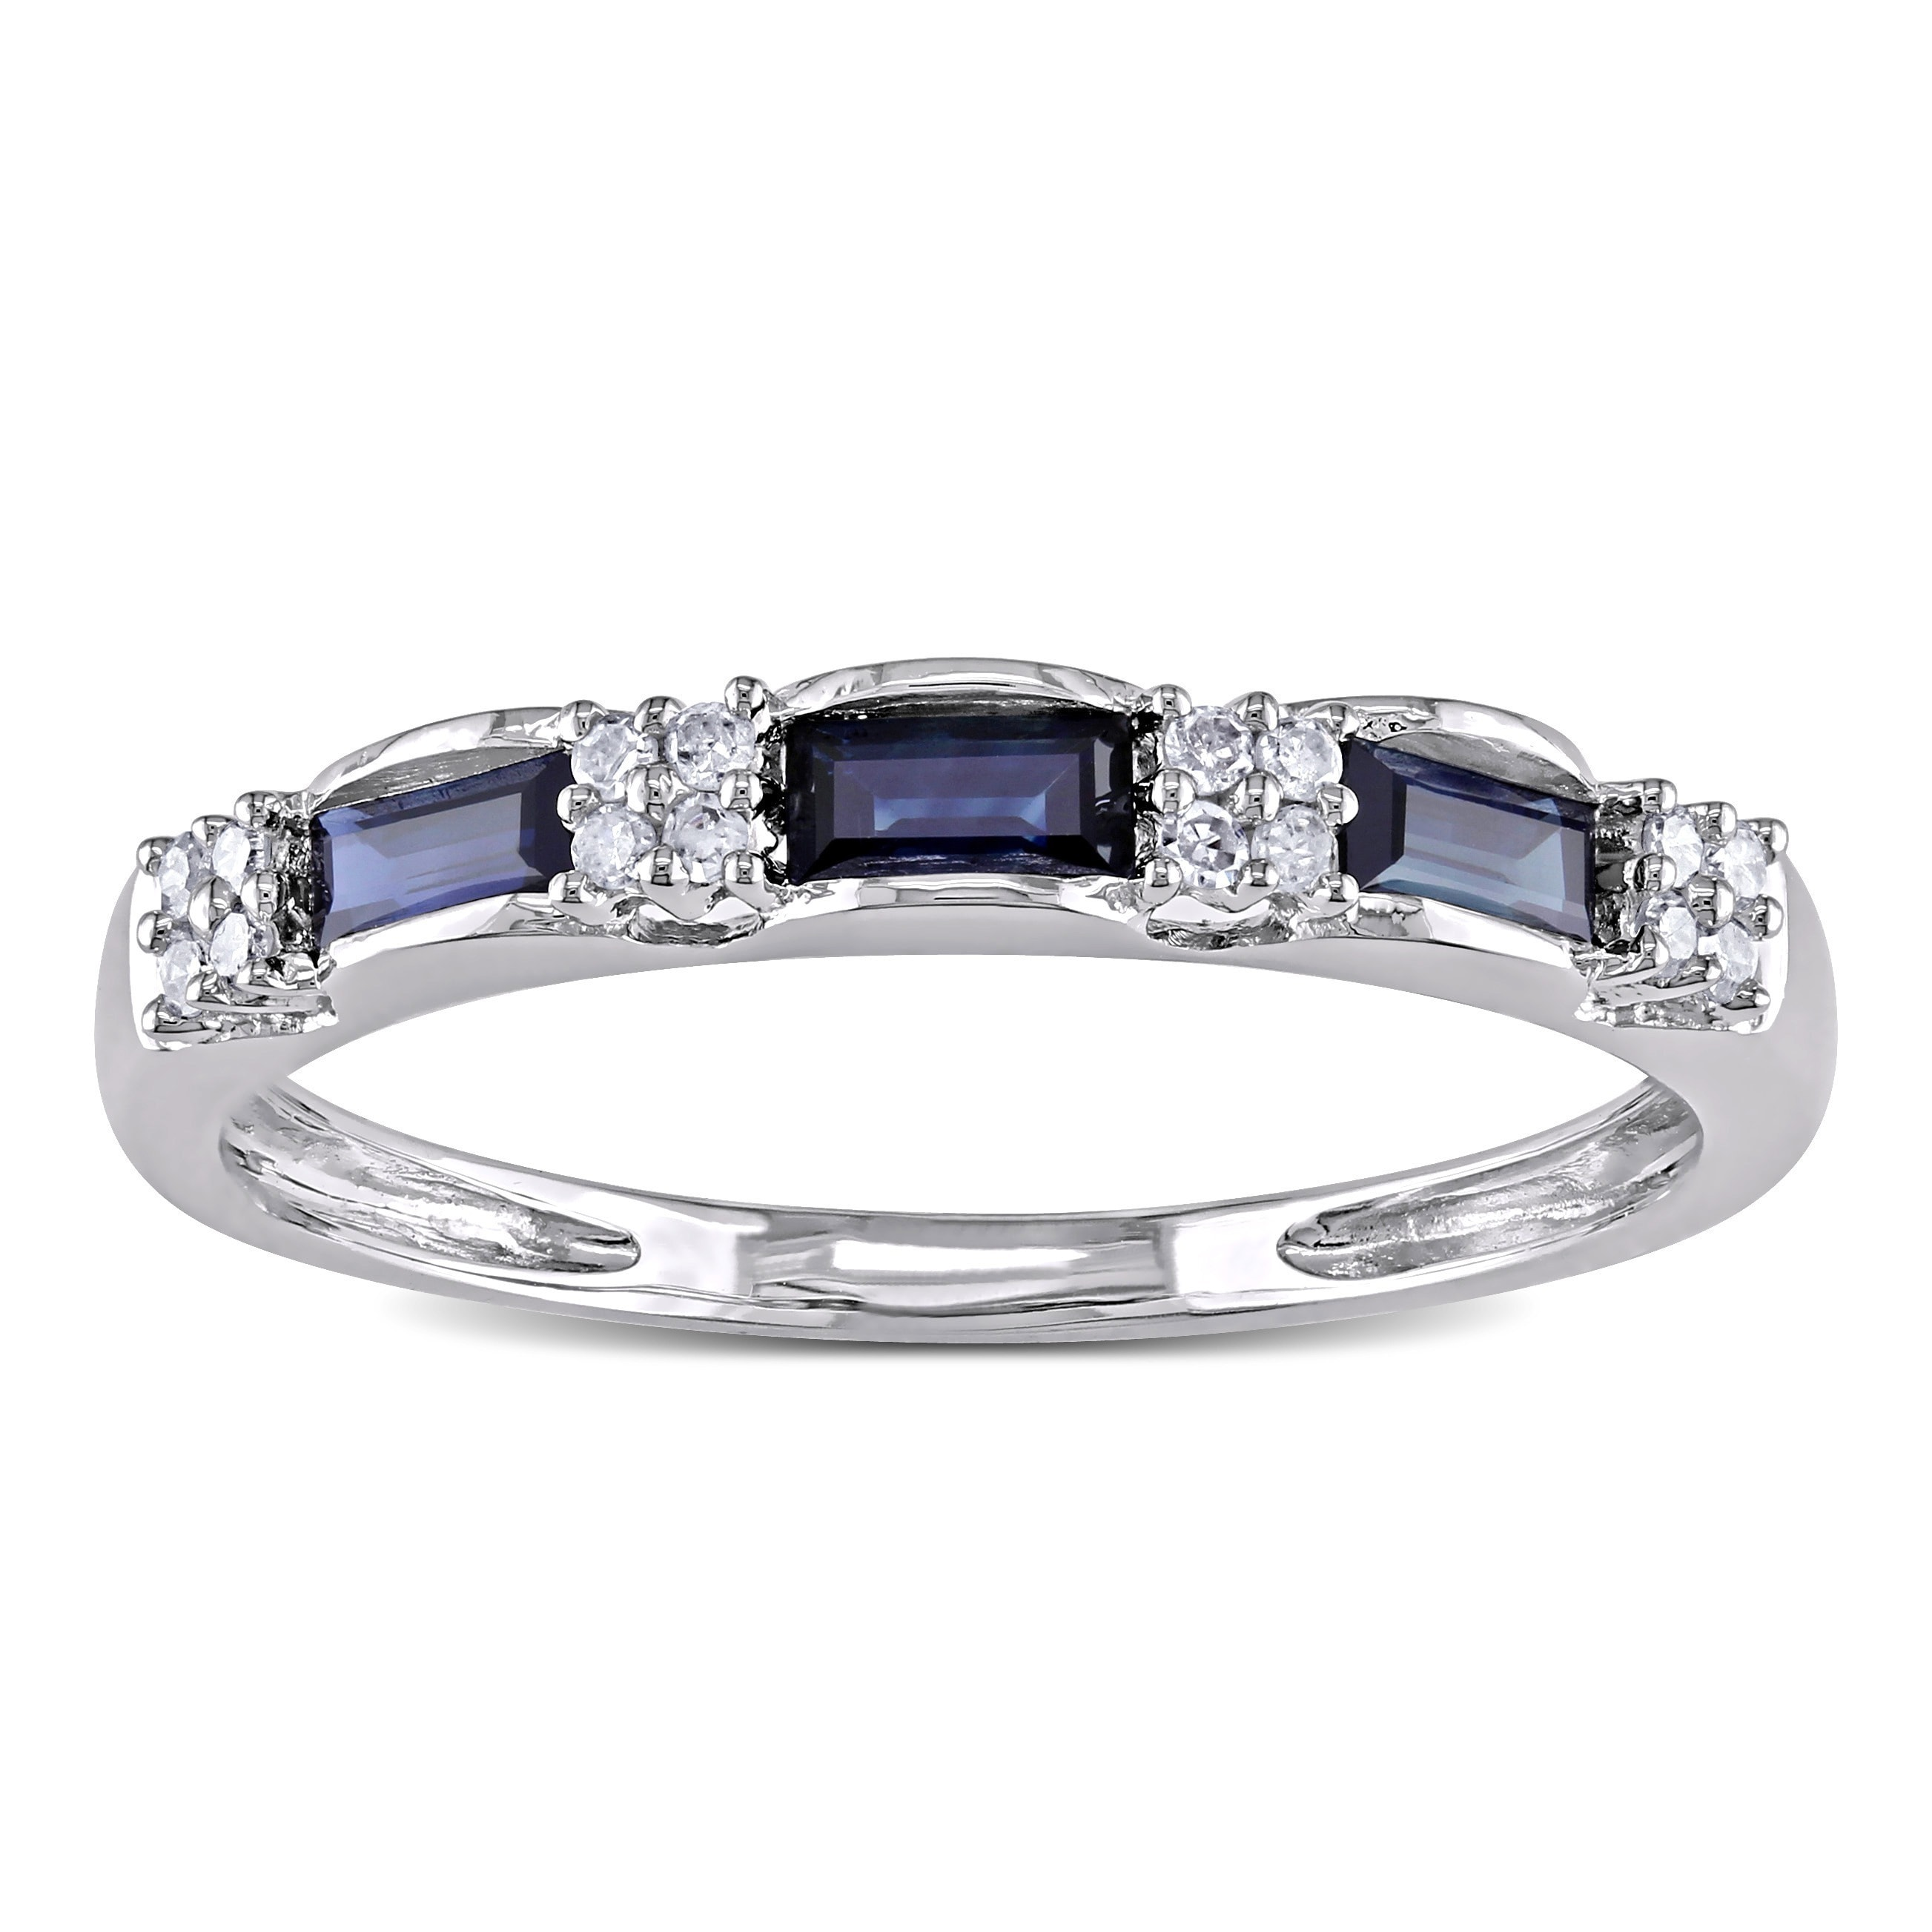 moss product ring diamond blue ic jewellers egvqfizozn image pagespeed of white qitok ben sapphire gold